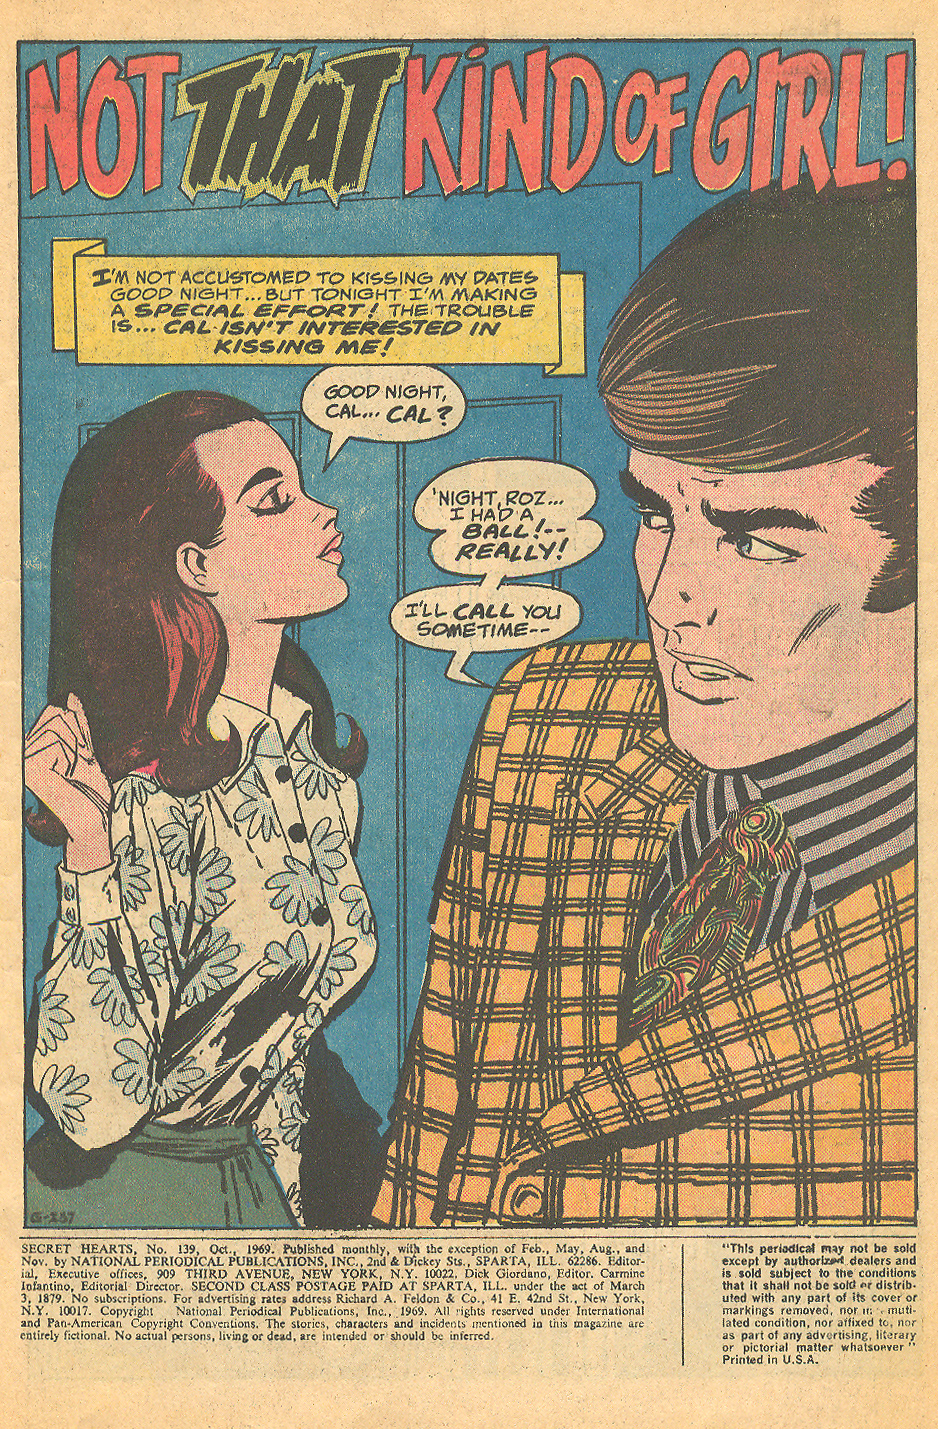 """The October 1969 issue of Secret Hearts had two Mortimer illustrated stories in it! Twice the fist -- all for 15 cents! """"Not That Kind of Girl!""""  Secret Hearts  #139 (October 1969)"""